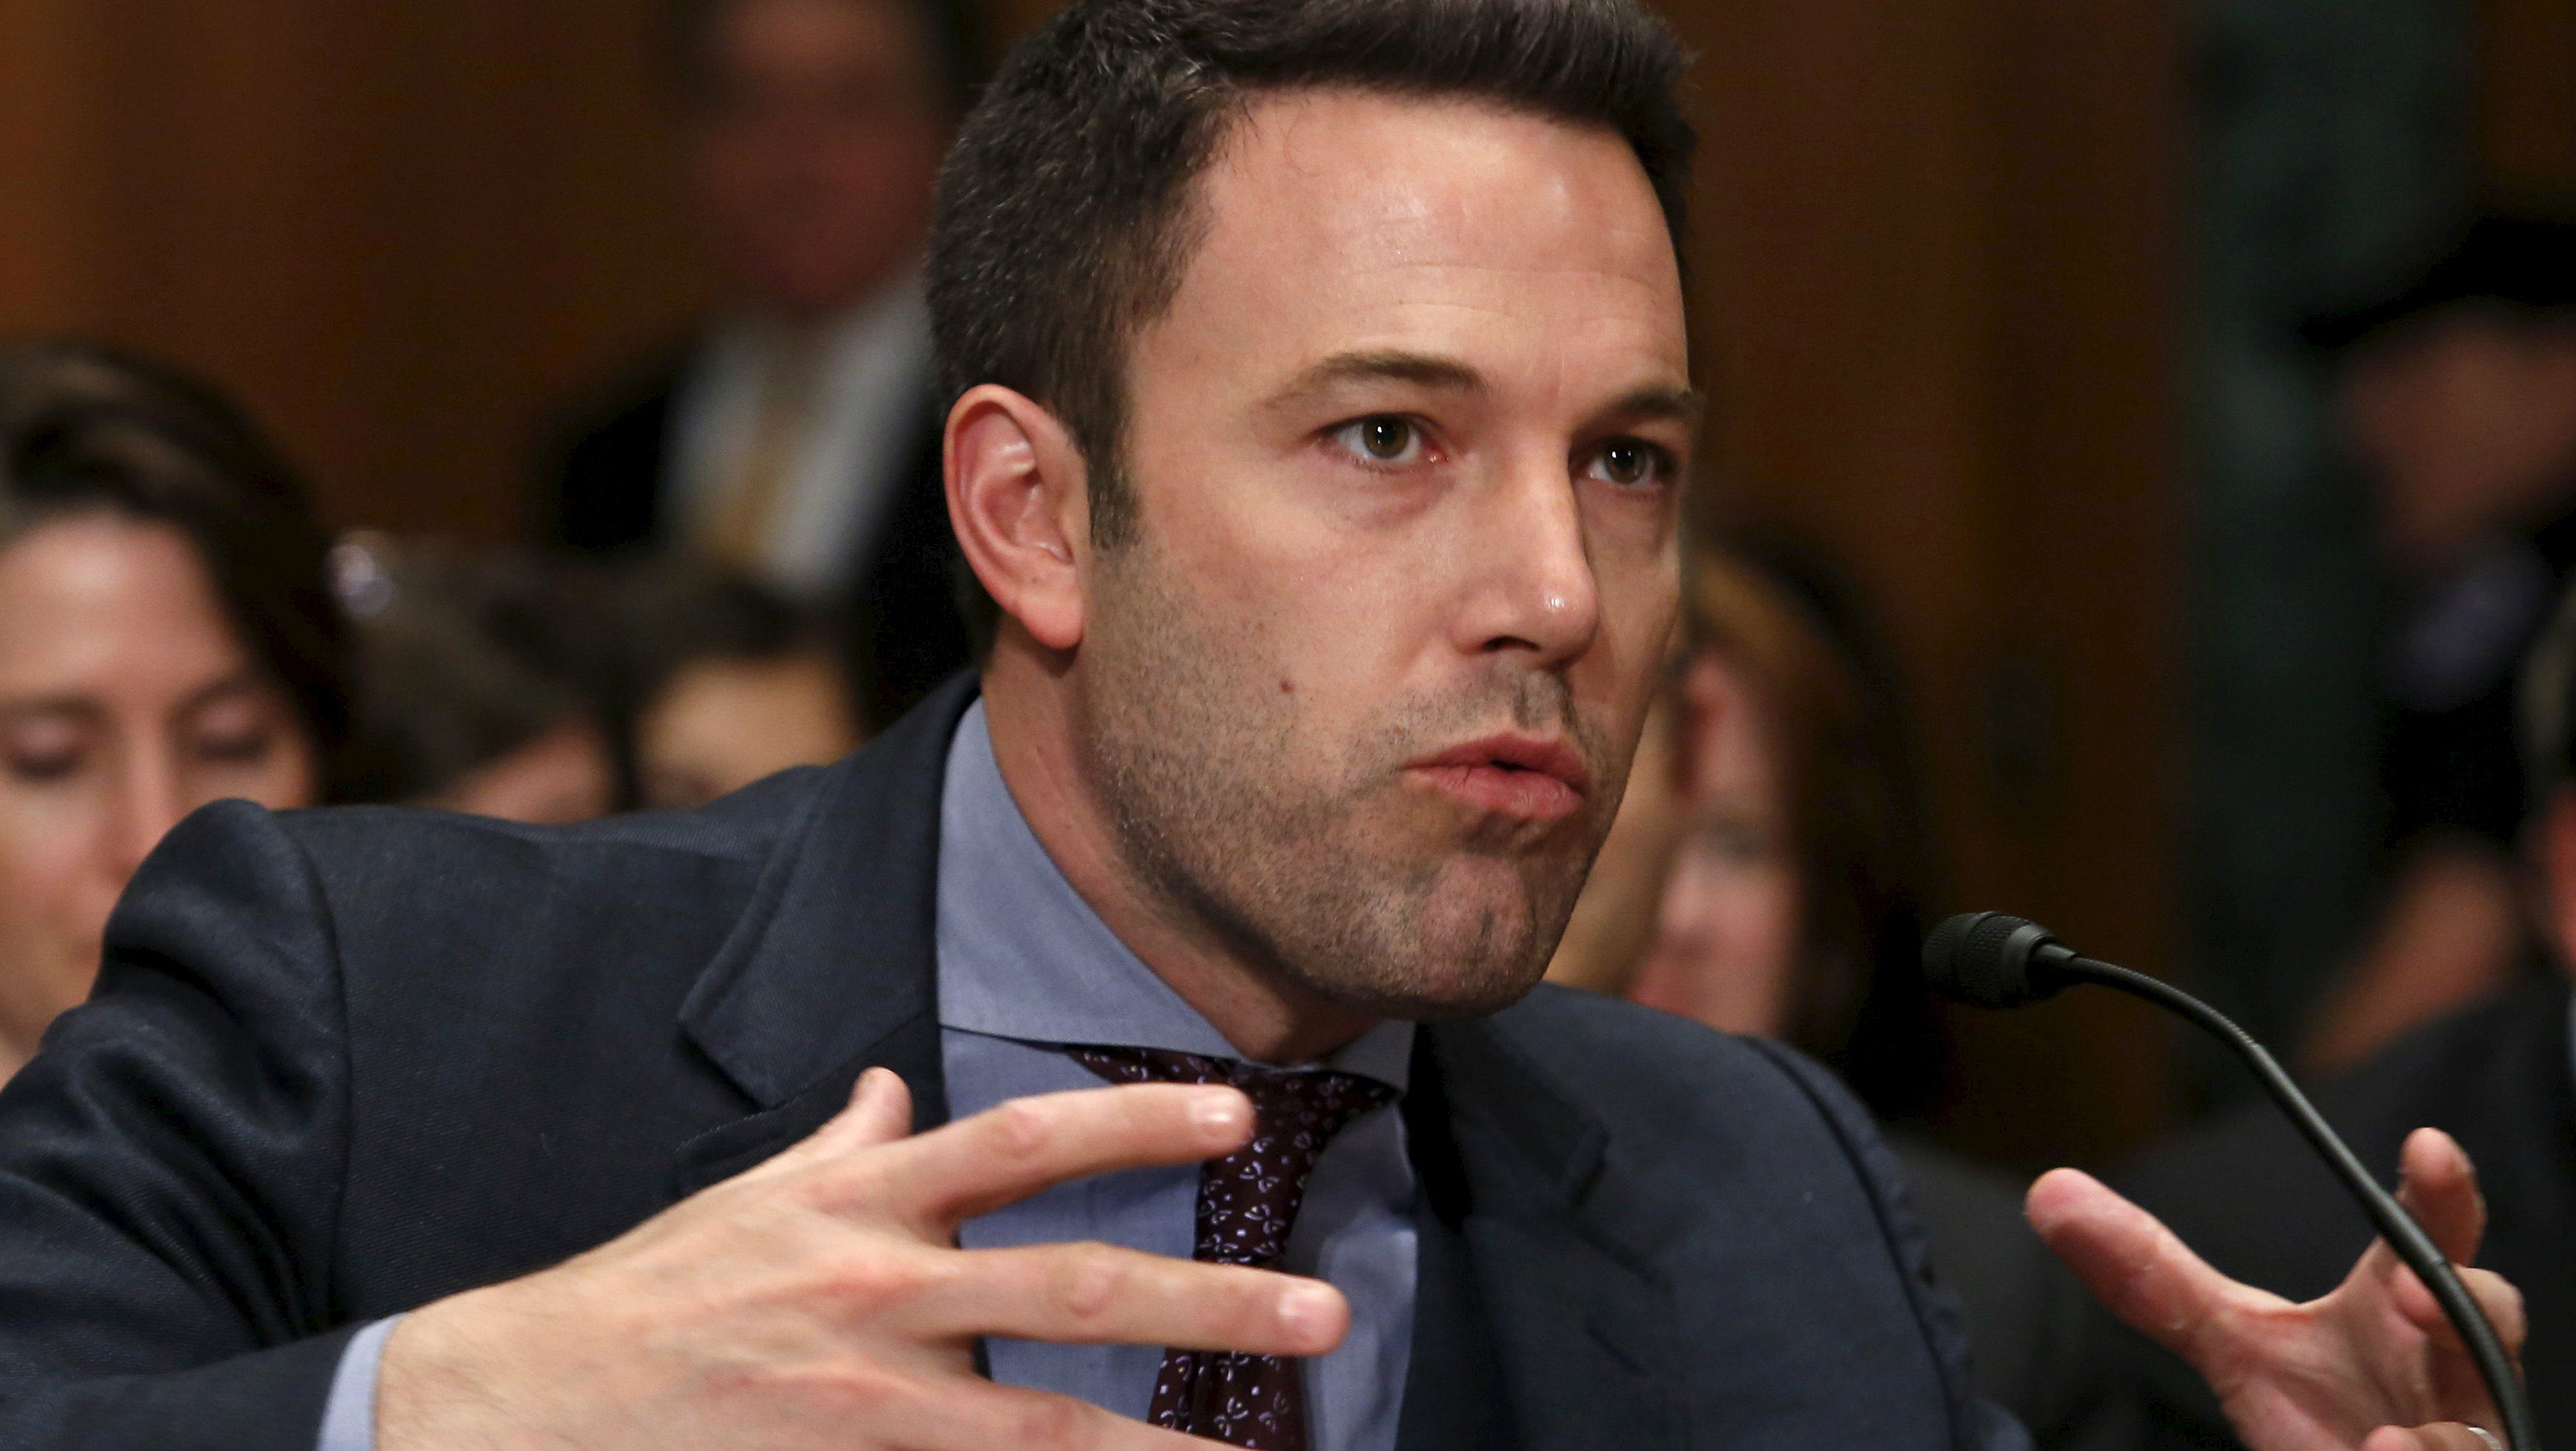 """Ben Affleck, actor, filmmaker and founder of the Eastern Congo Initiative, testifies before a Senate Appropriations State, Foreign Operations and Related Programs Subcommittee hearing on """"Diplomacy, Development, and National Security"""" on Capitol Hill in Washington March 26, 2015. REUTERS/Yuri Gripas"""